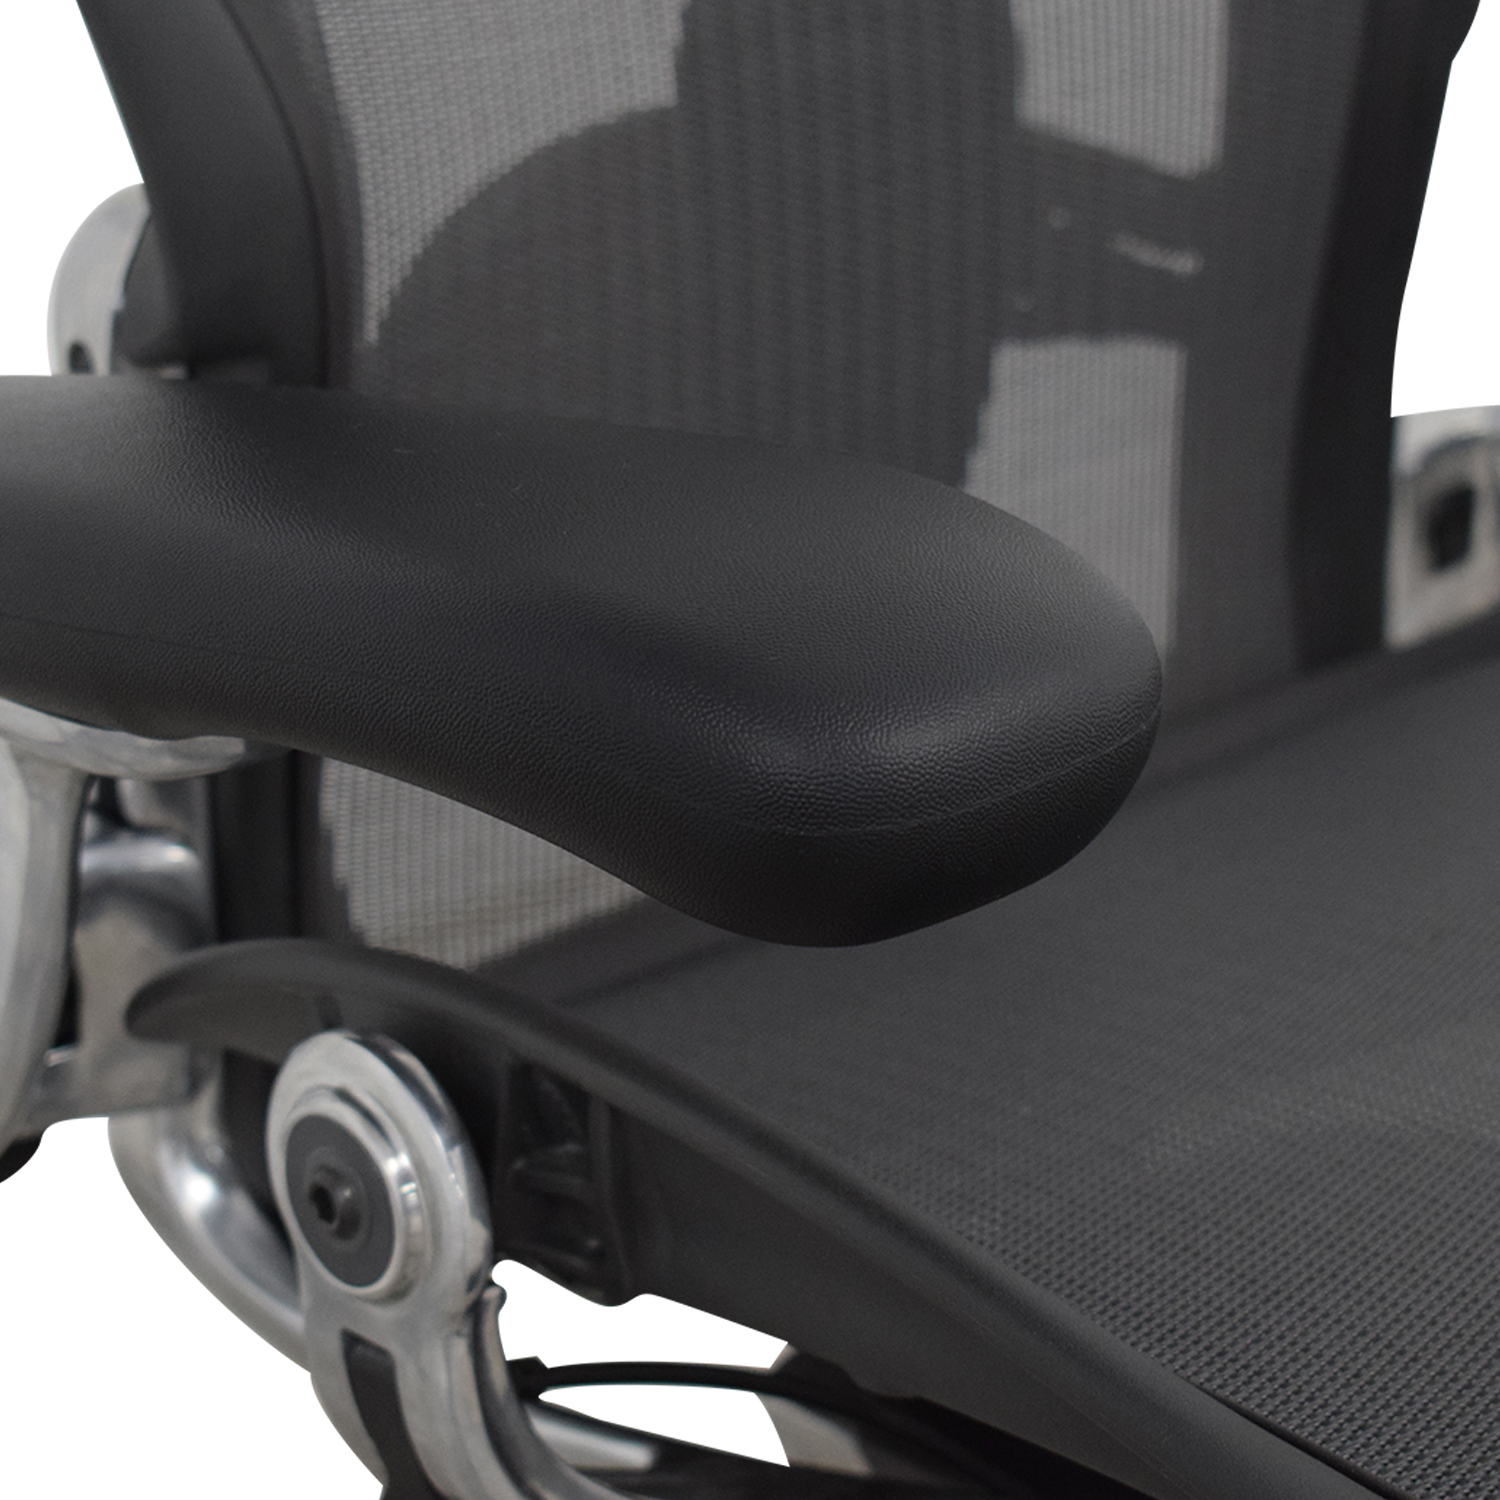 Herman Miller Herman Miller Aeron Size B Office Chair coupon